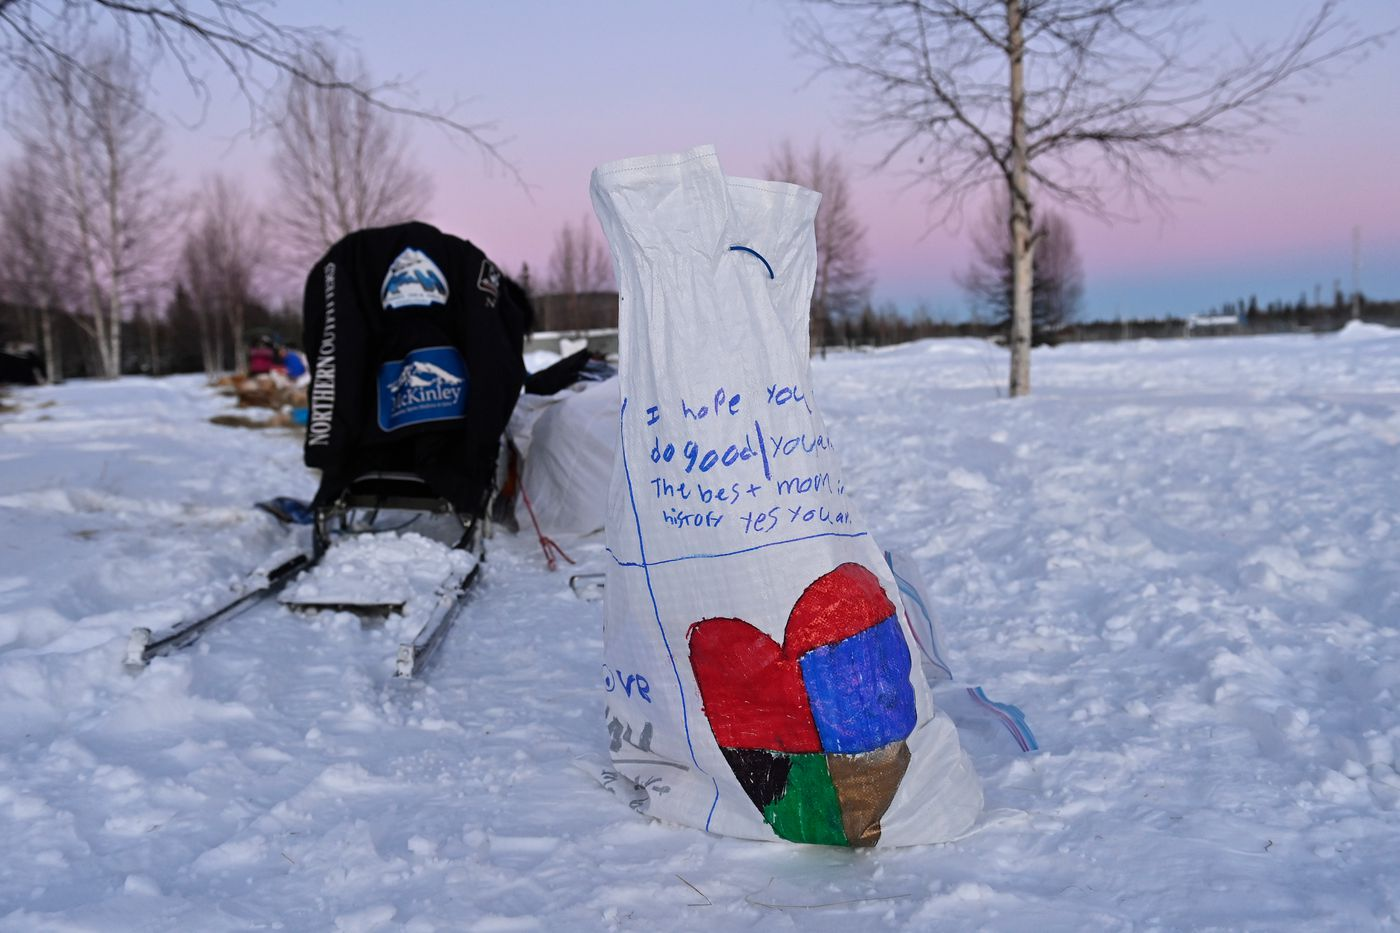 A message left on a drop bag reads 'I hope you do good. You are the best mom in history ' at the first checkpoint of the Summit Quest 300 on February 13, 2021. (Marc Lester / ADN)